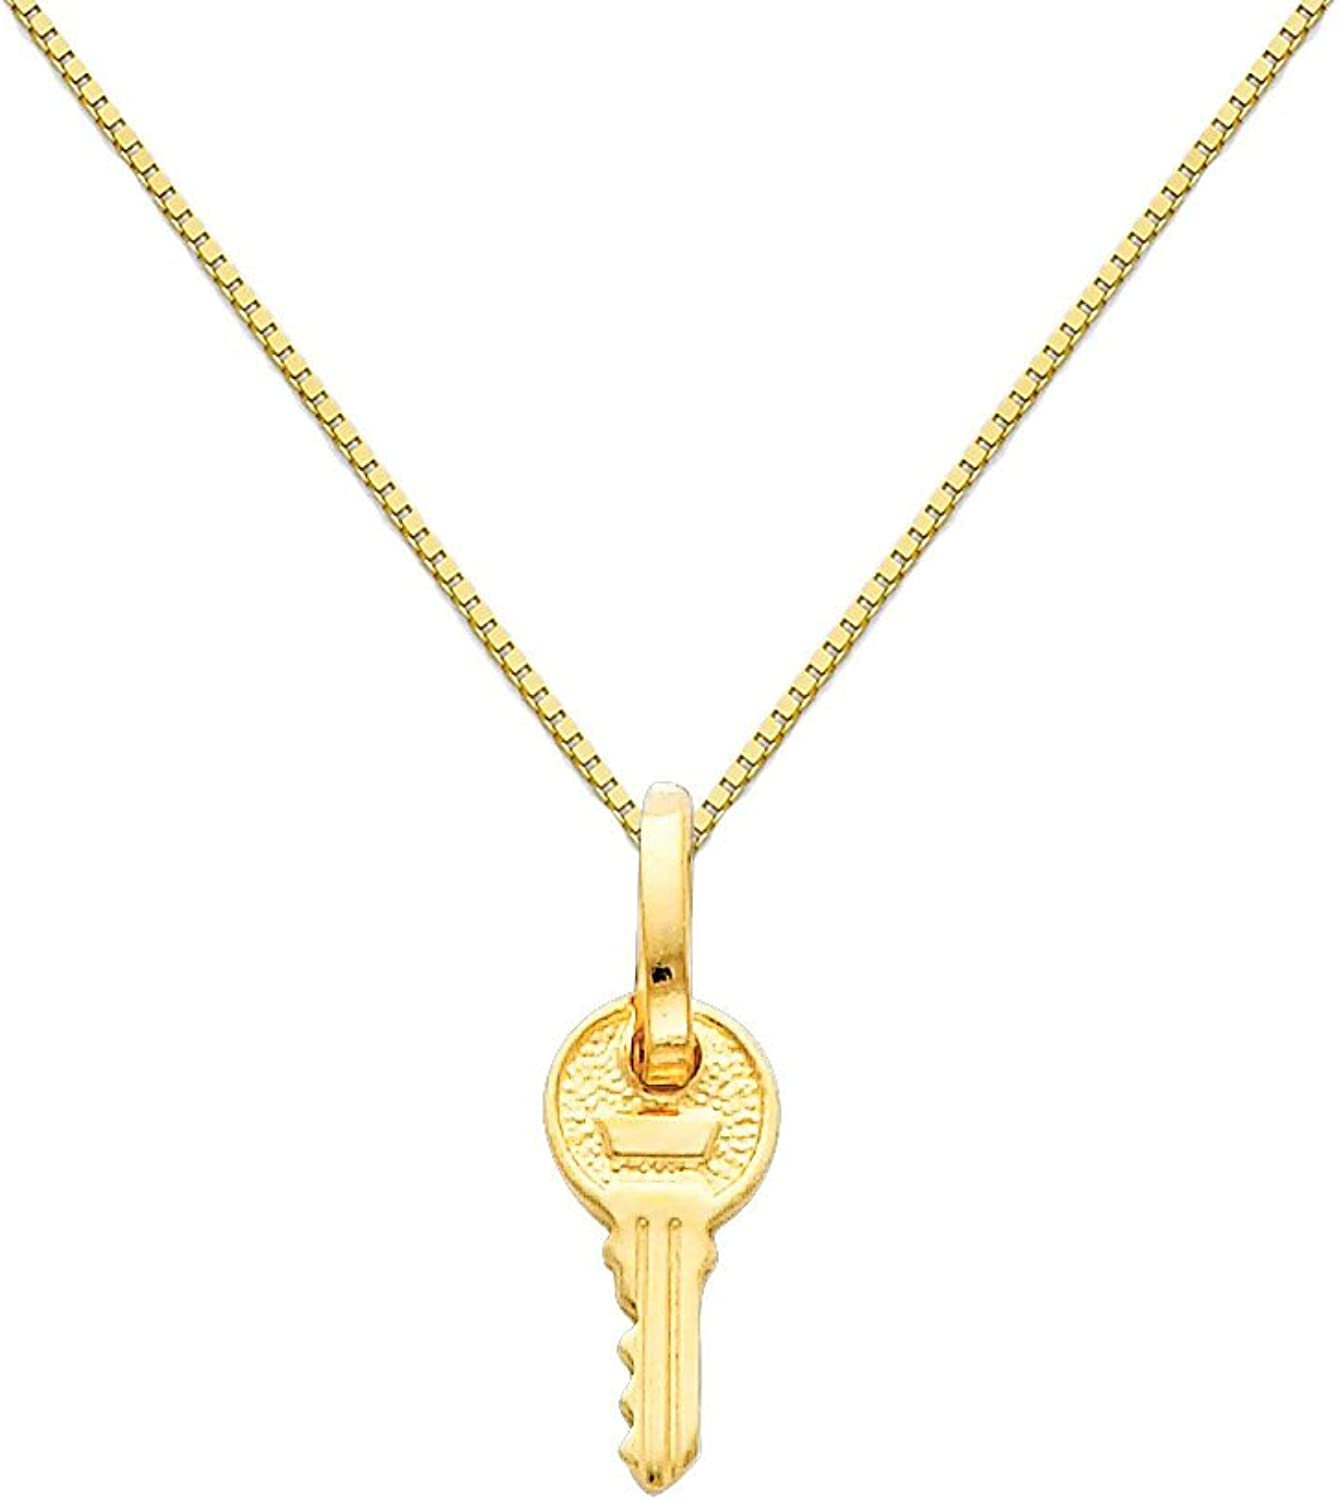 14k Yellow gold Key Charm Pendant with 0.65mm Box Link Chain Necklace